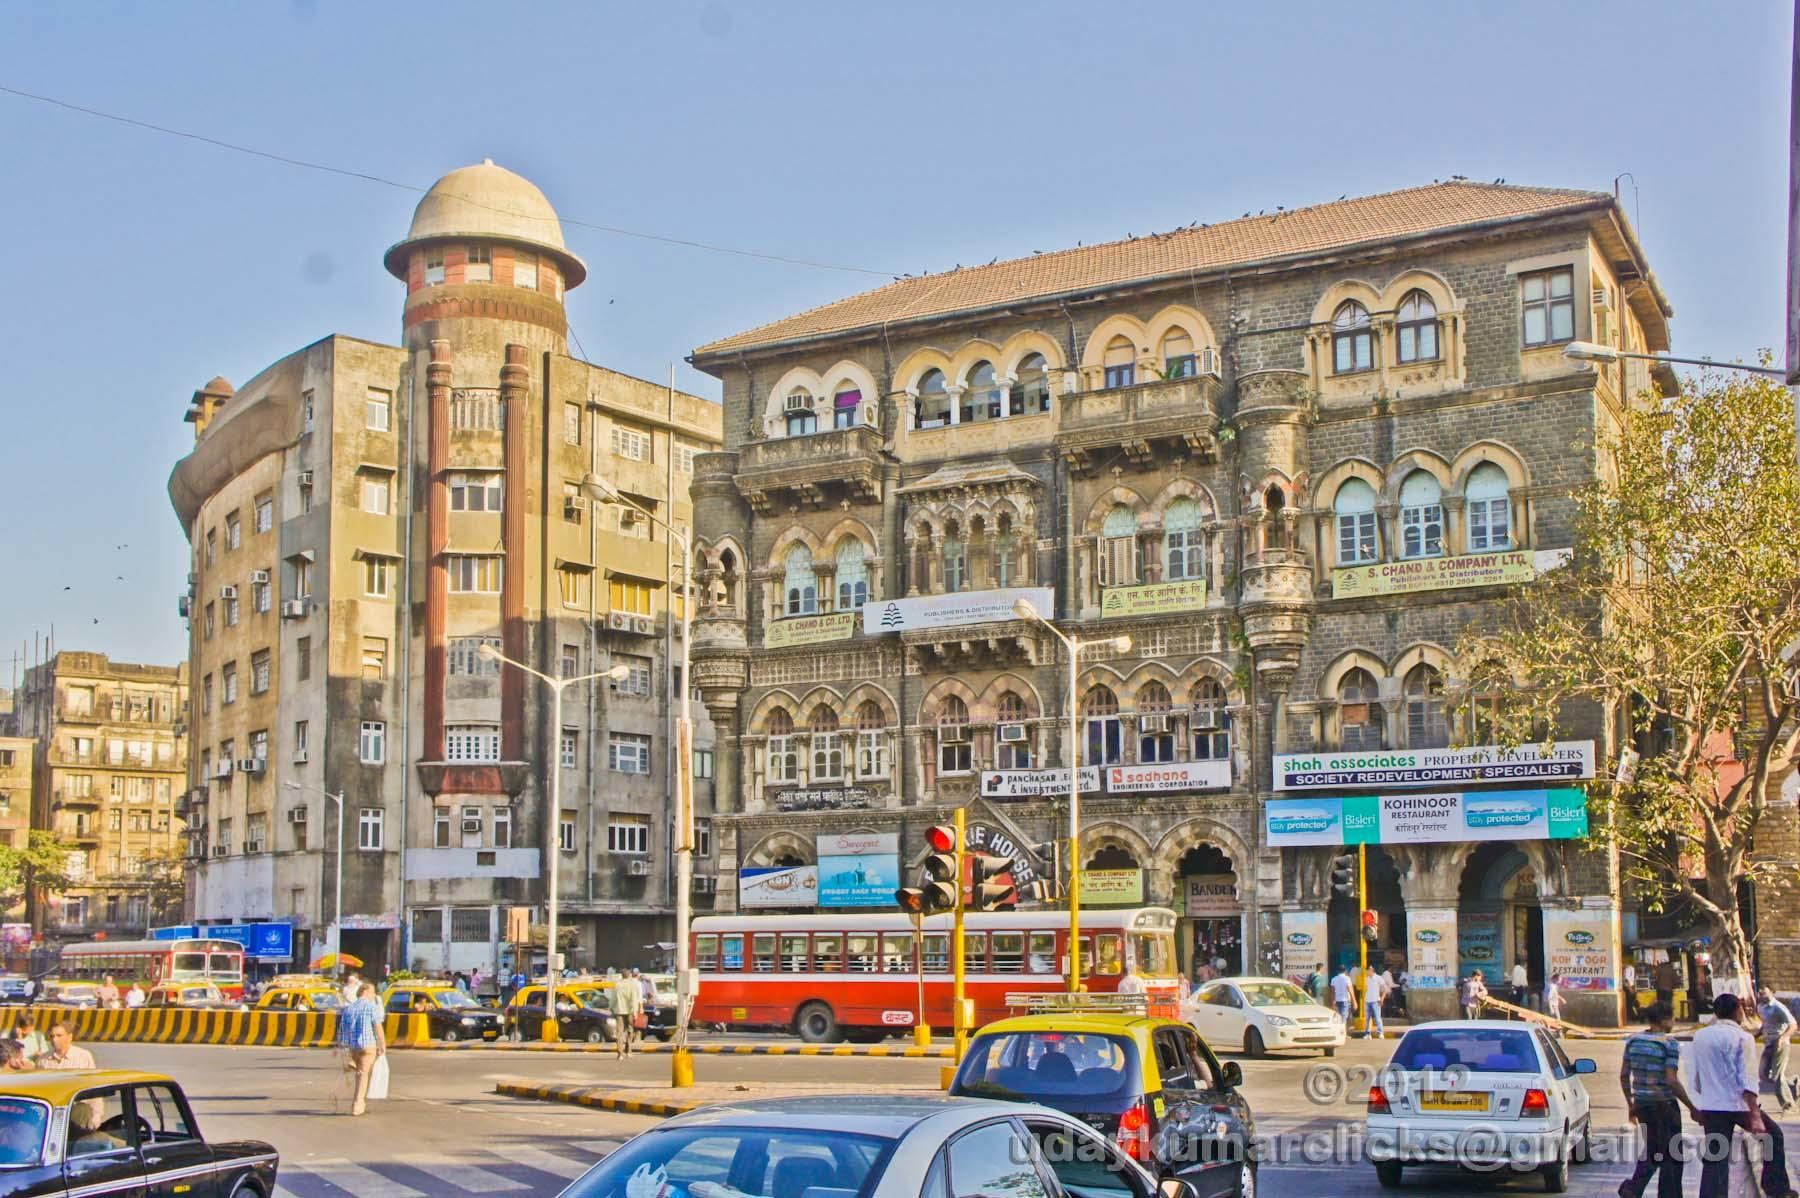 A look into the Fort area of Mumbai